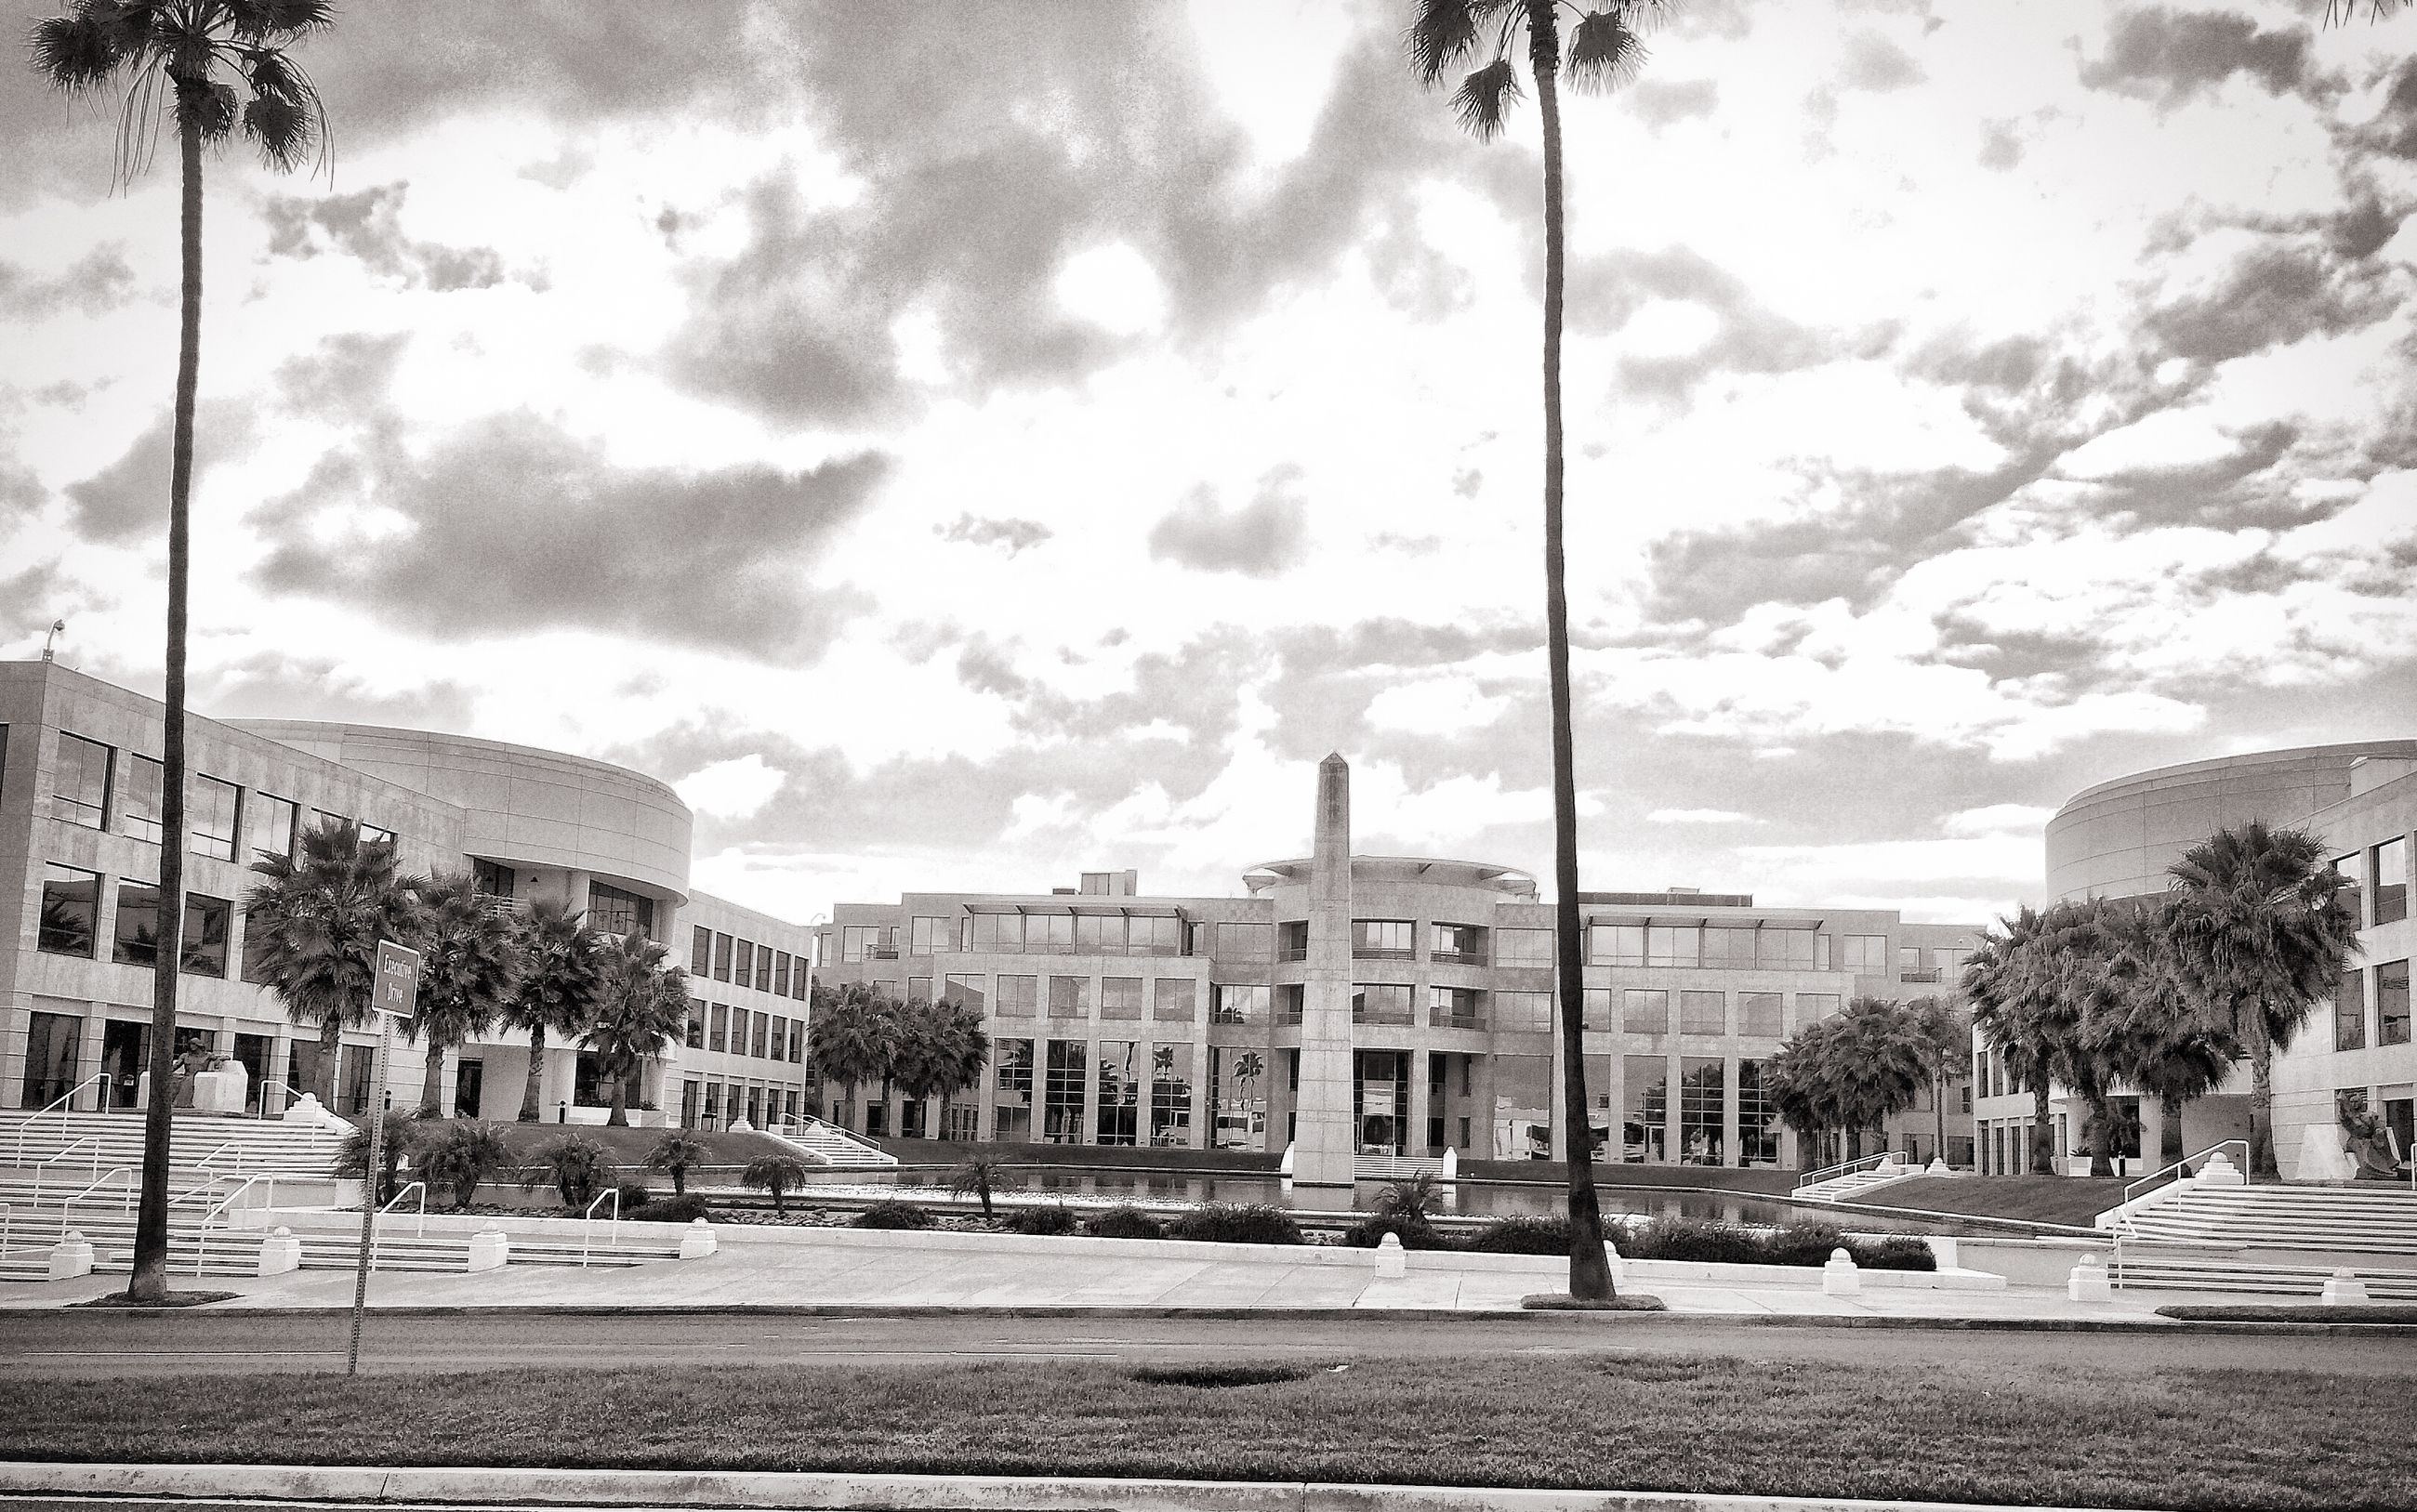 building exterior, sky, architecture, built structure, tree, street, cloud - sky, palm tree, city, street light, road, car, cloud, transportation, incidental people, cloudy, sidewalk, city life, the way forward, land vehicle